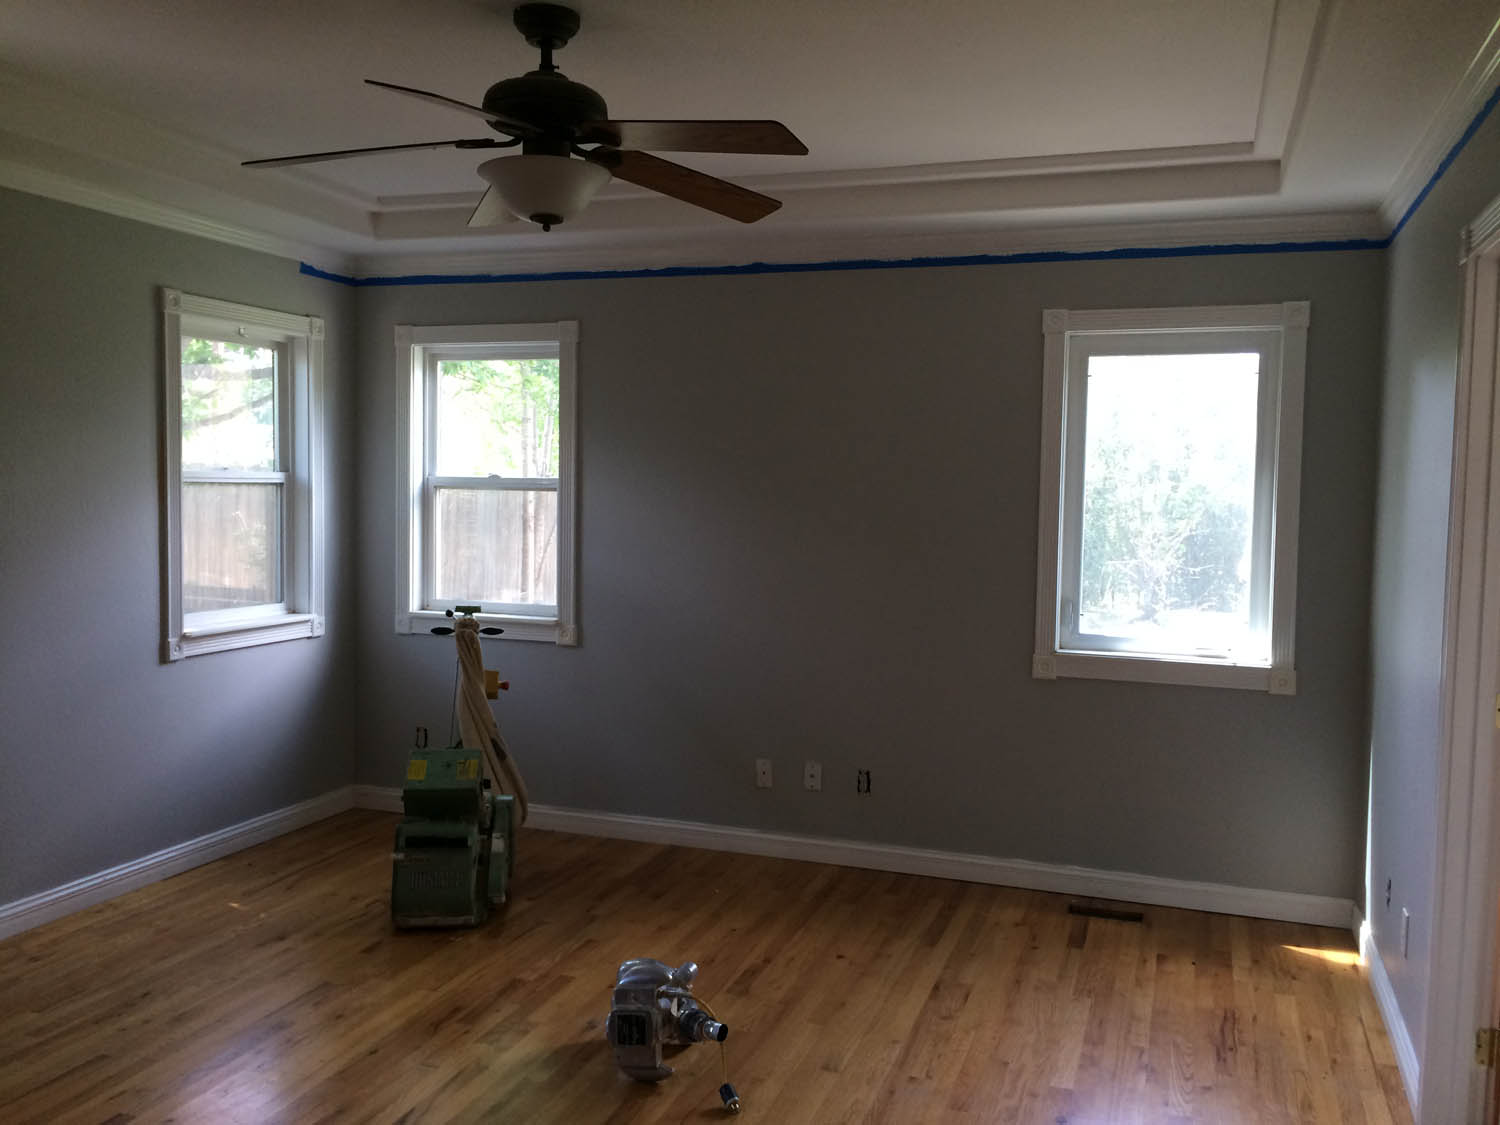 Master bedroom walls during painting.